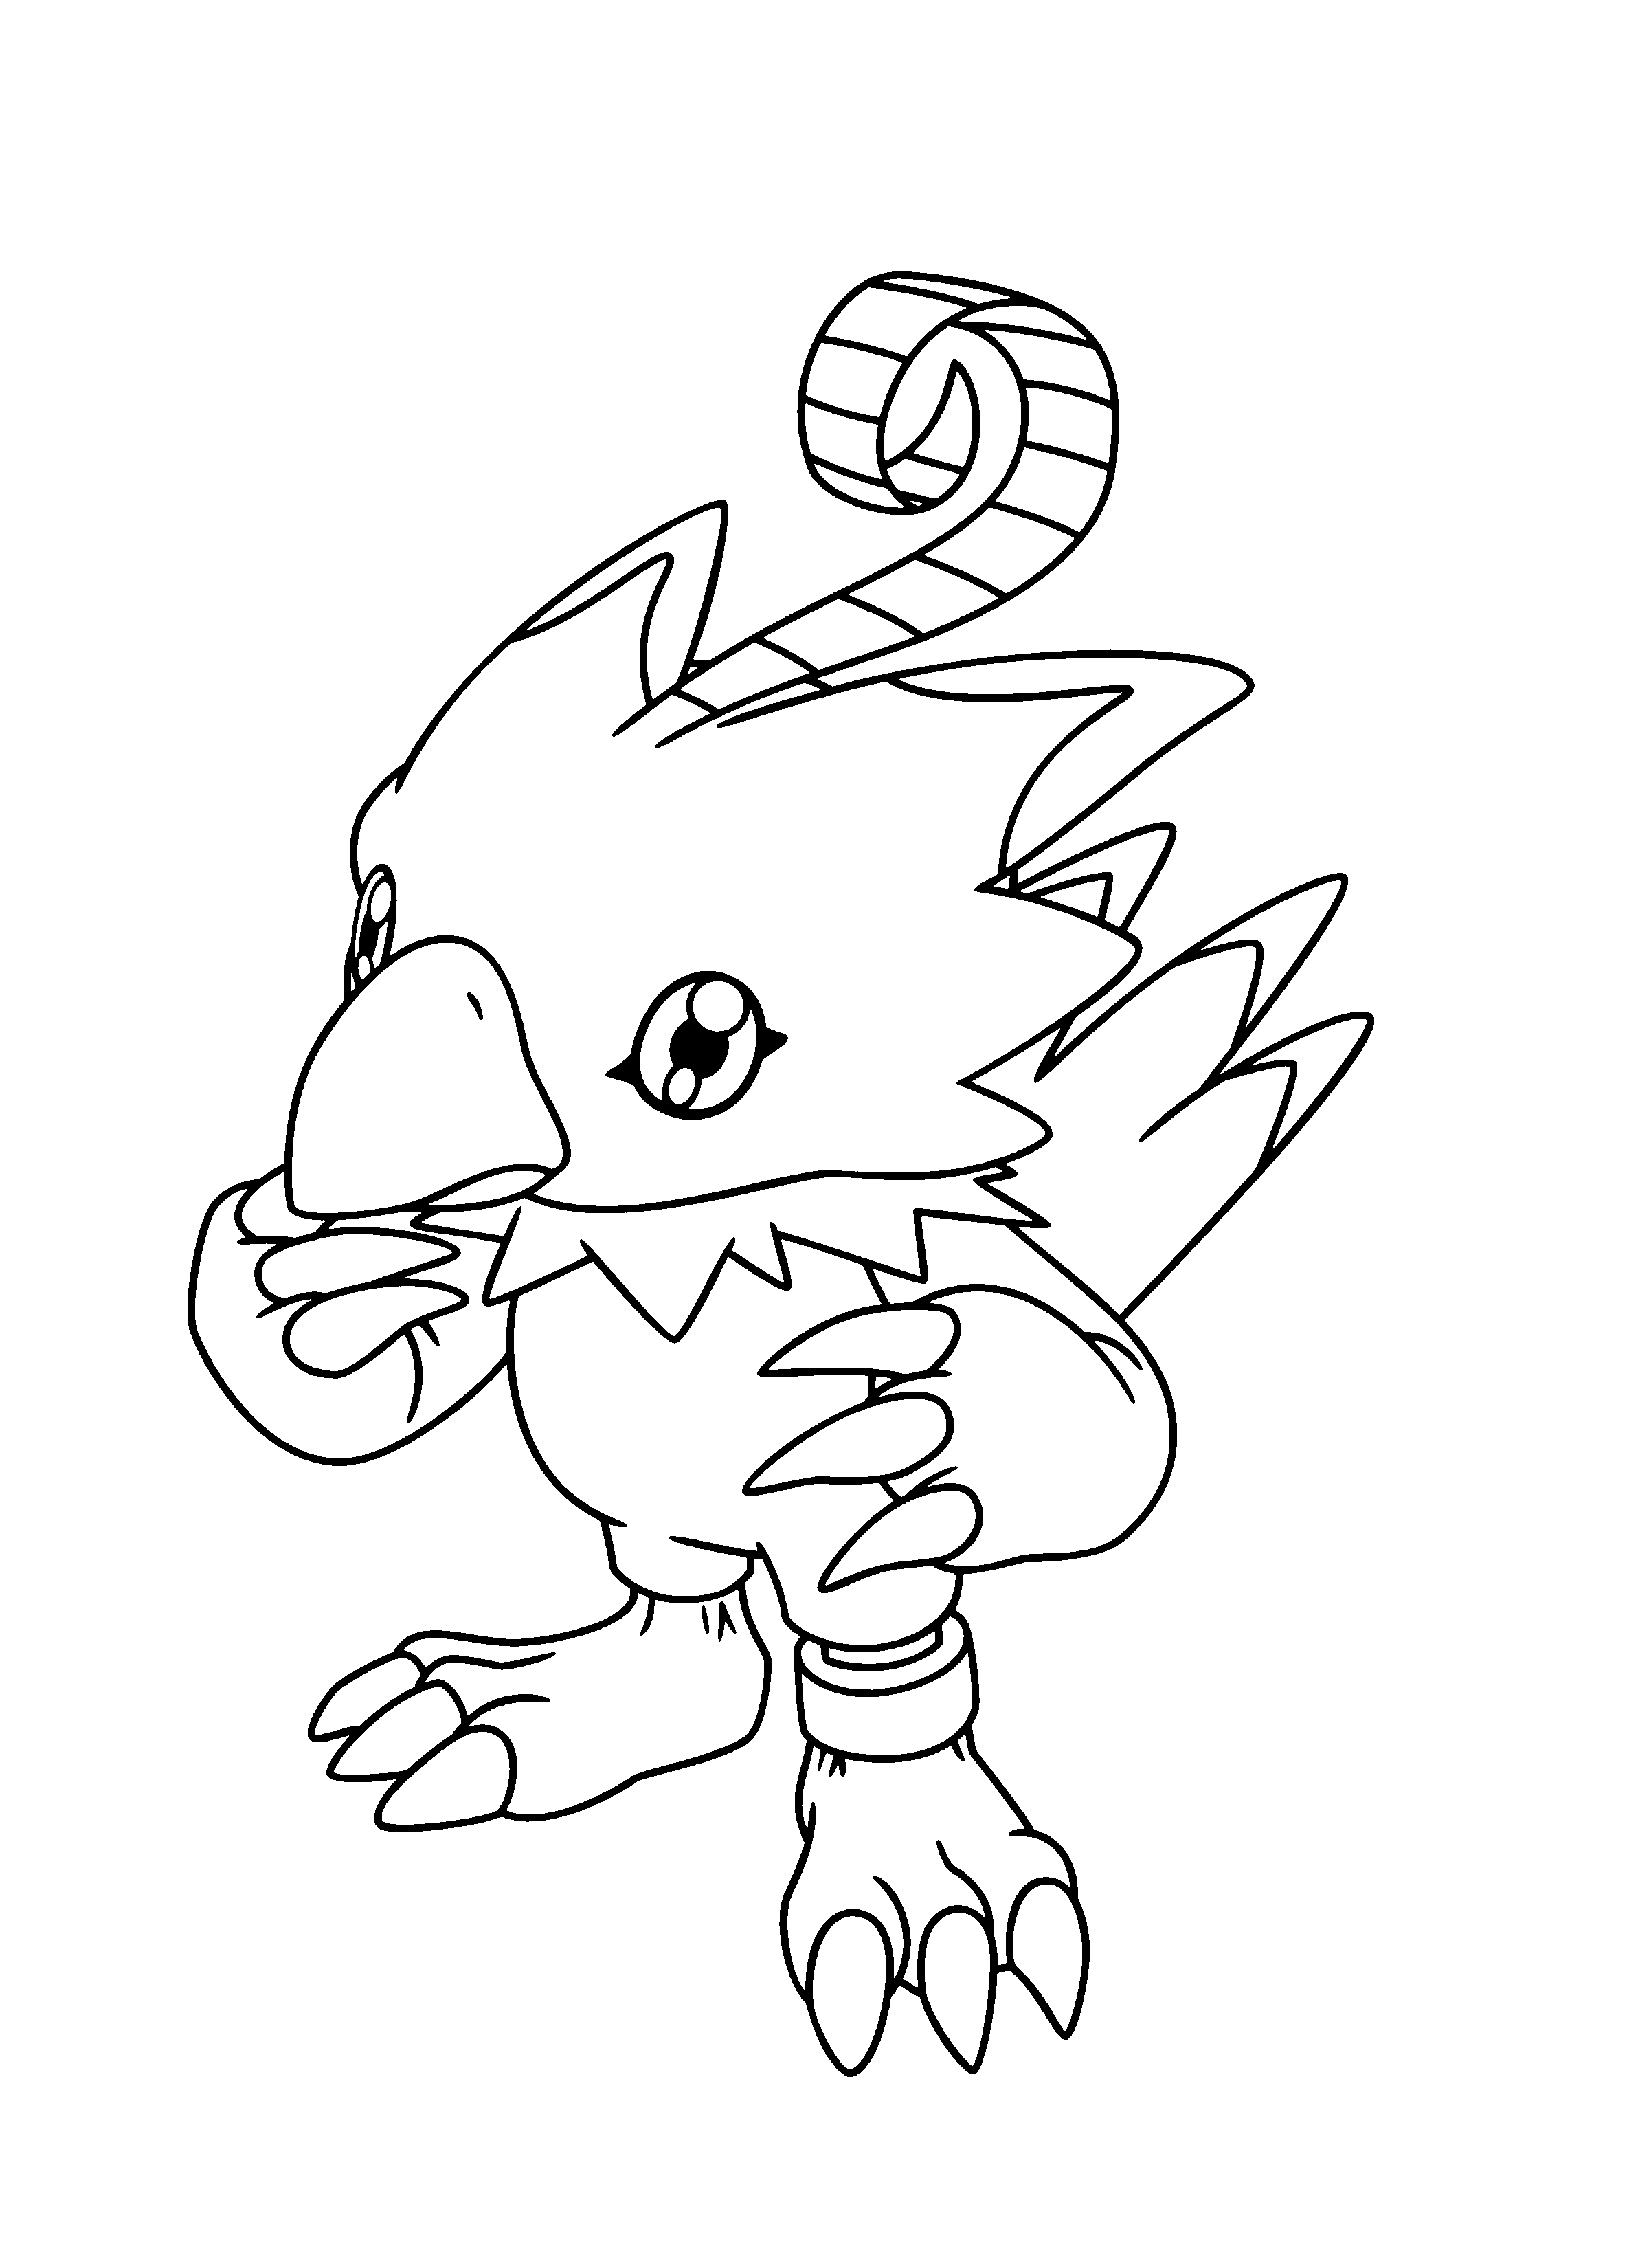 Digimon Coloring Pages Coloringpages1001 Com Cartoon Coloring Pages Poppy Coloring Page Coloring Pages